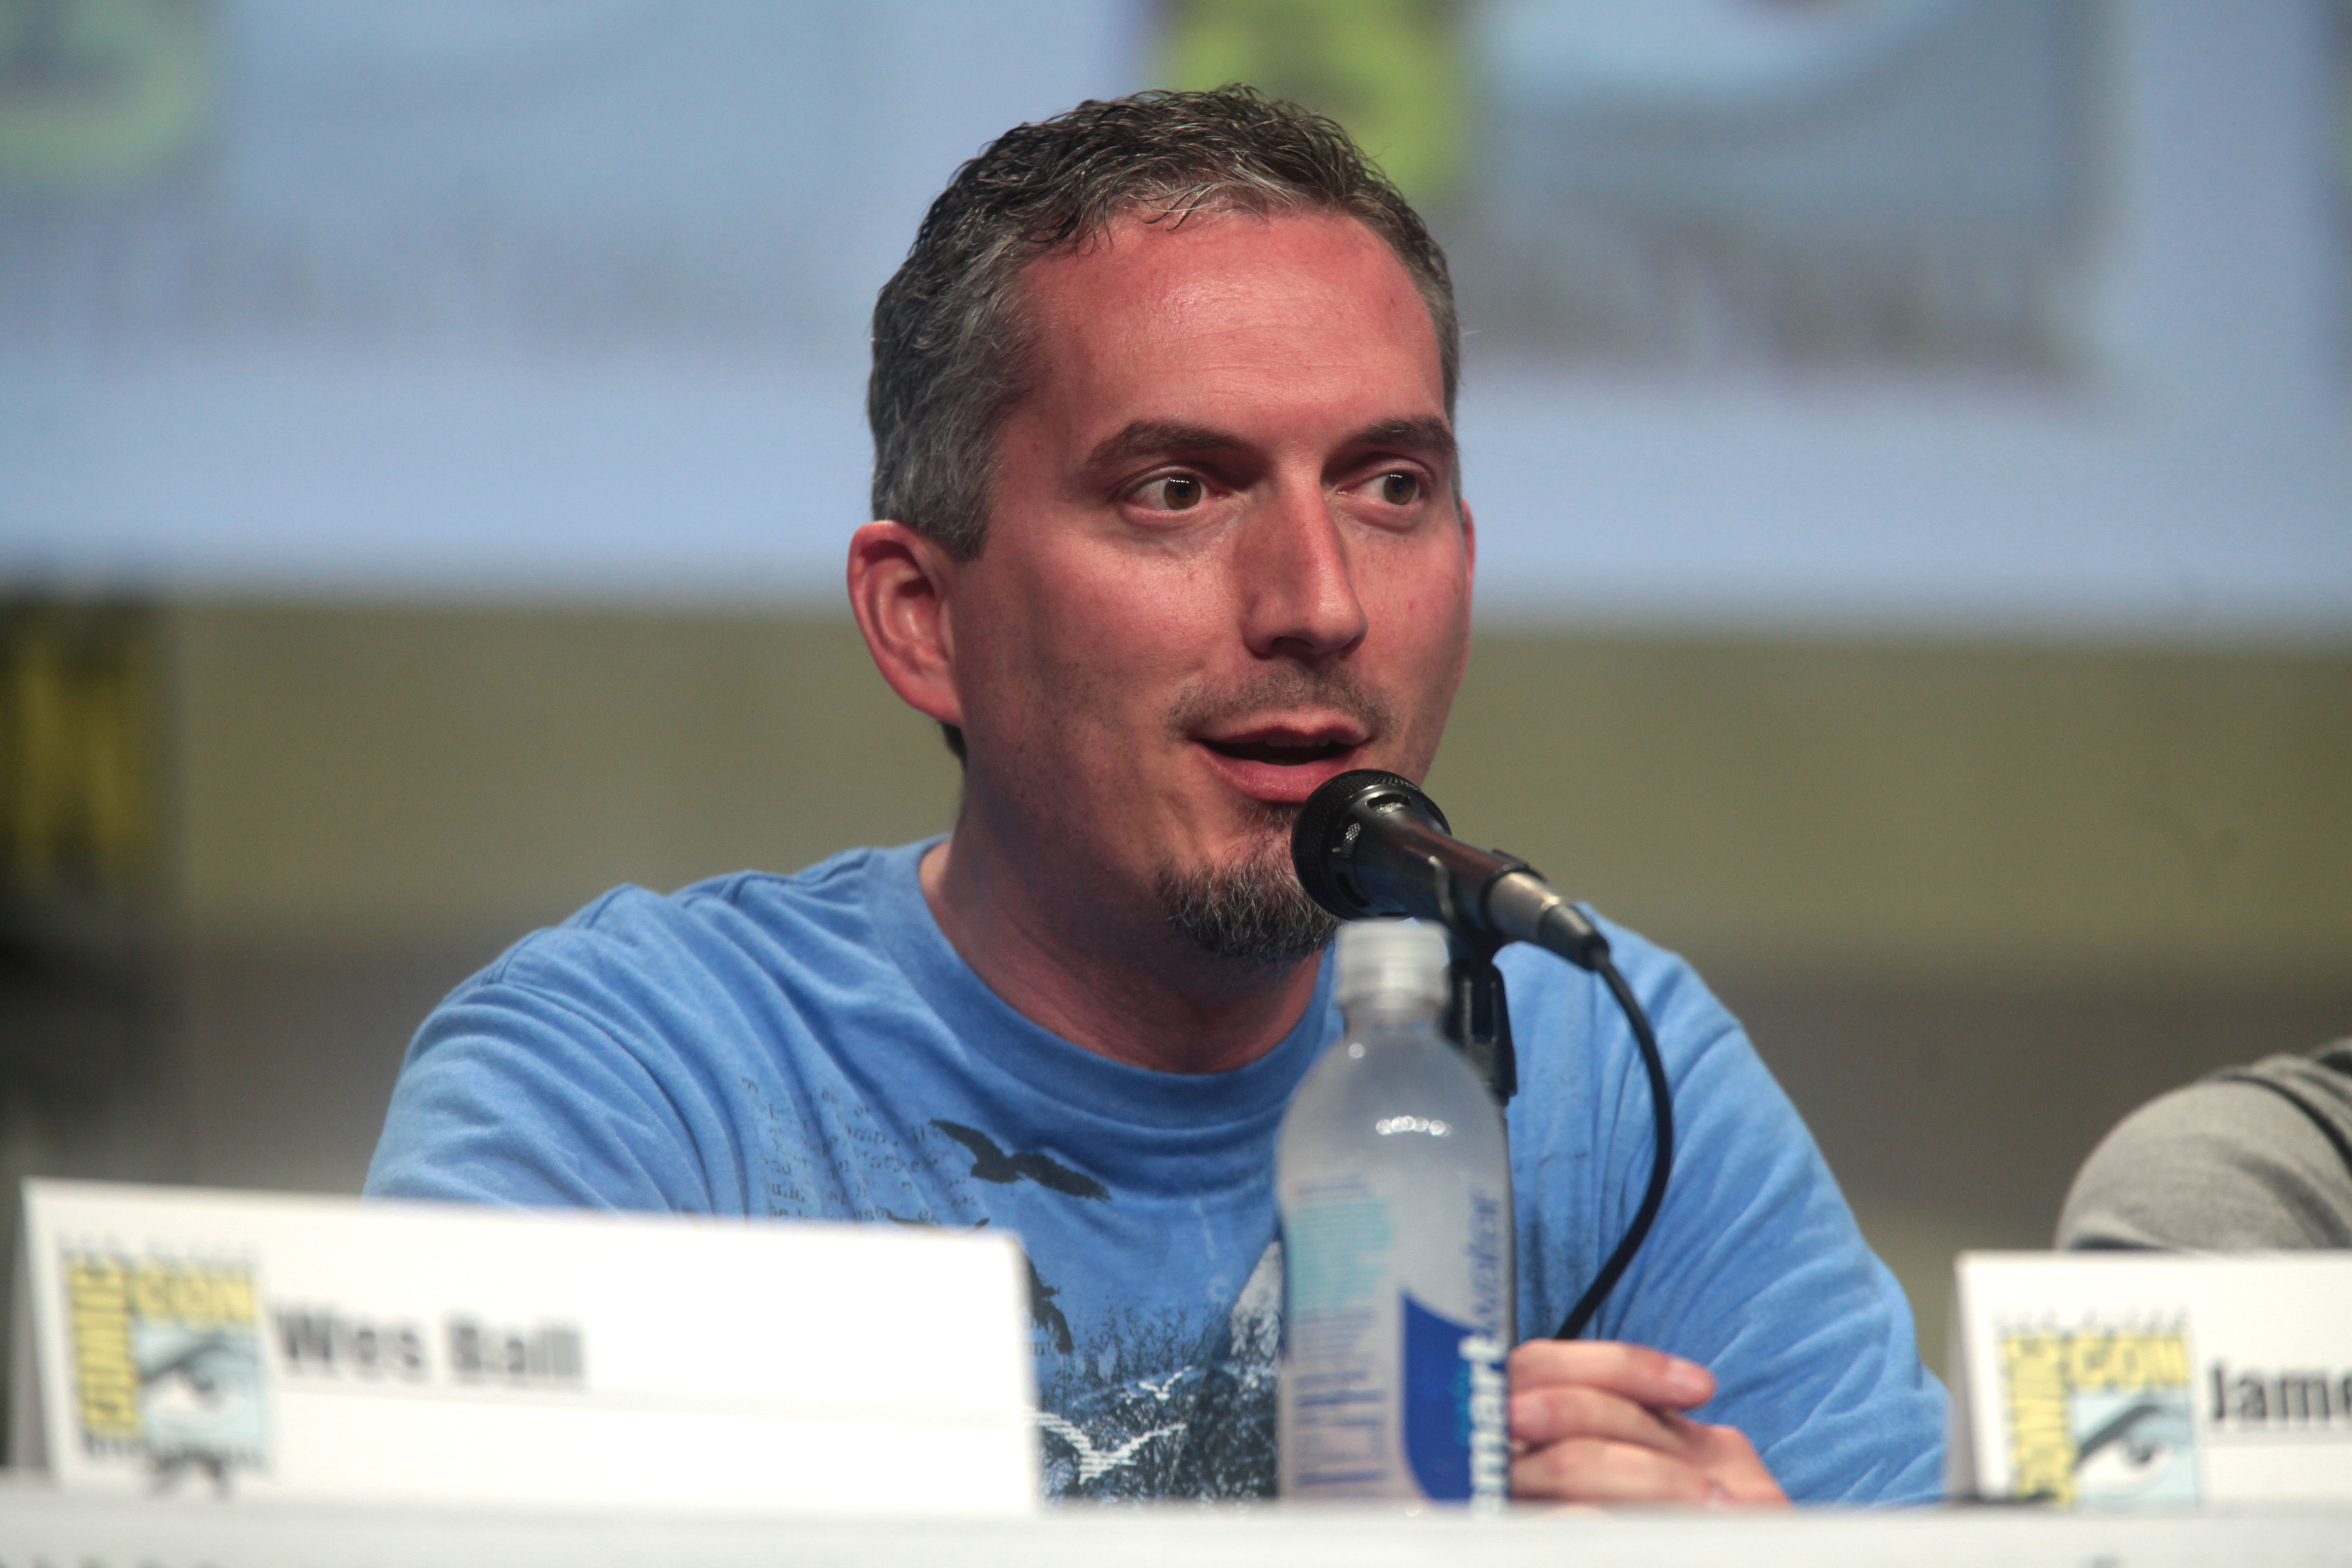 Dashner at the 2014 [[San Diego Comic-Con International]]